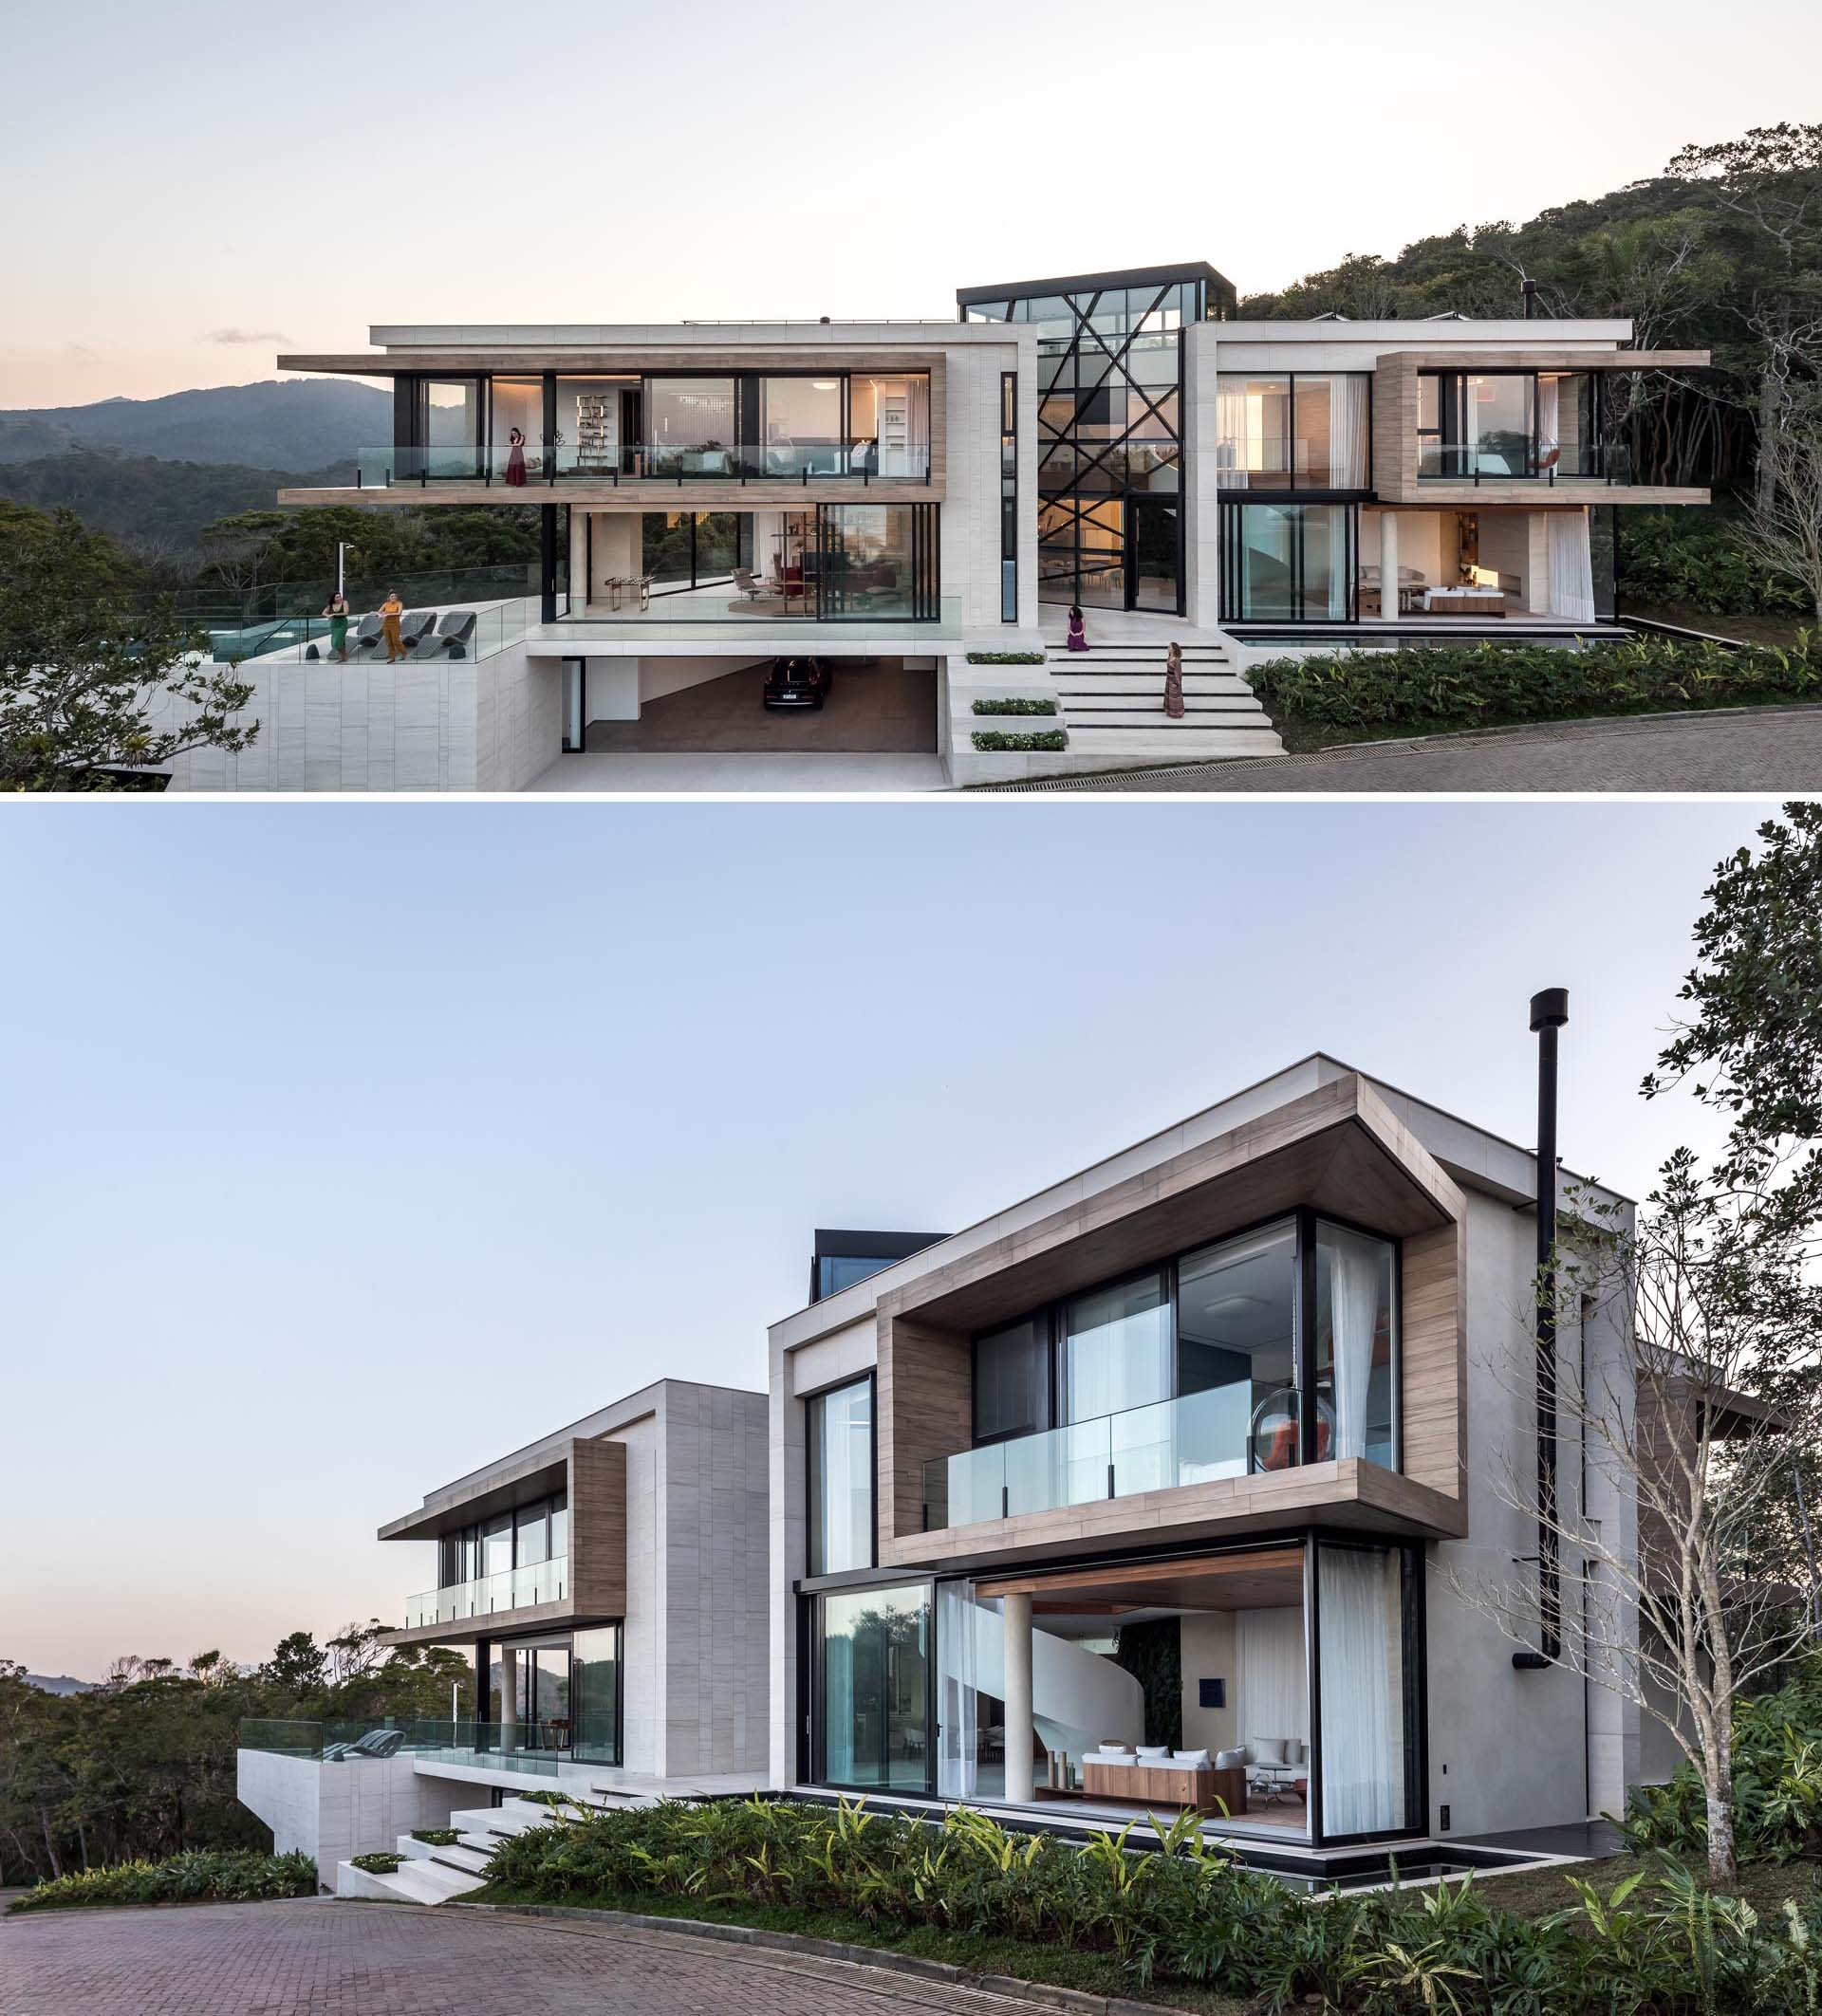 A modern house with multiple levels also has a cantilevered swimming pool.